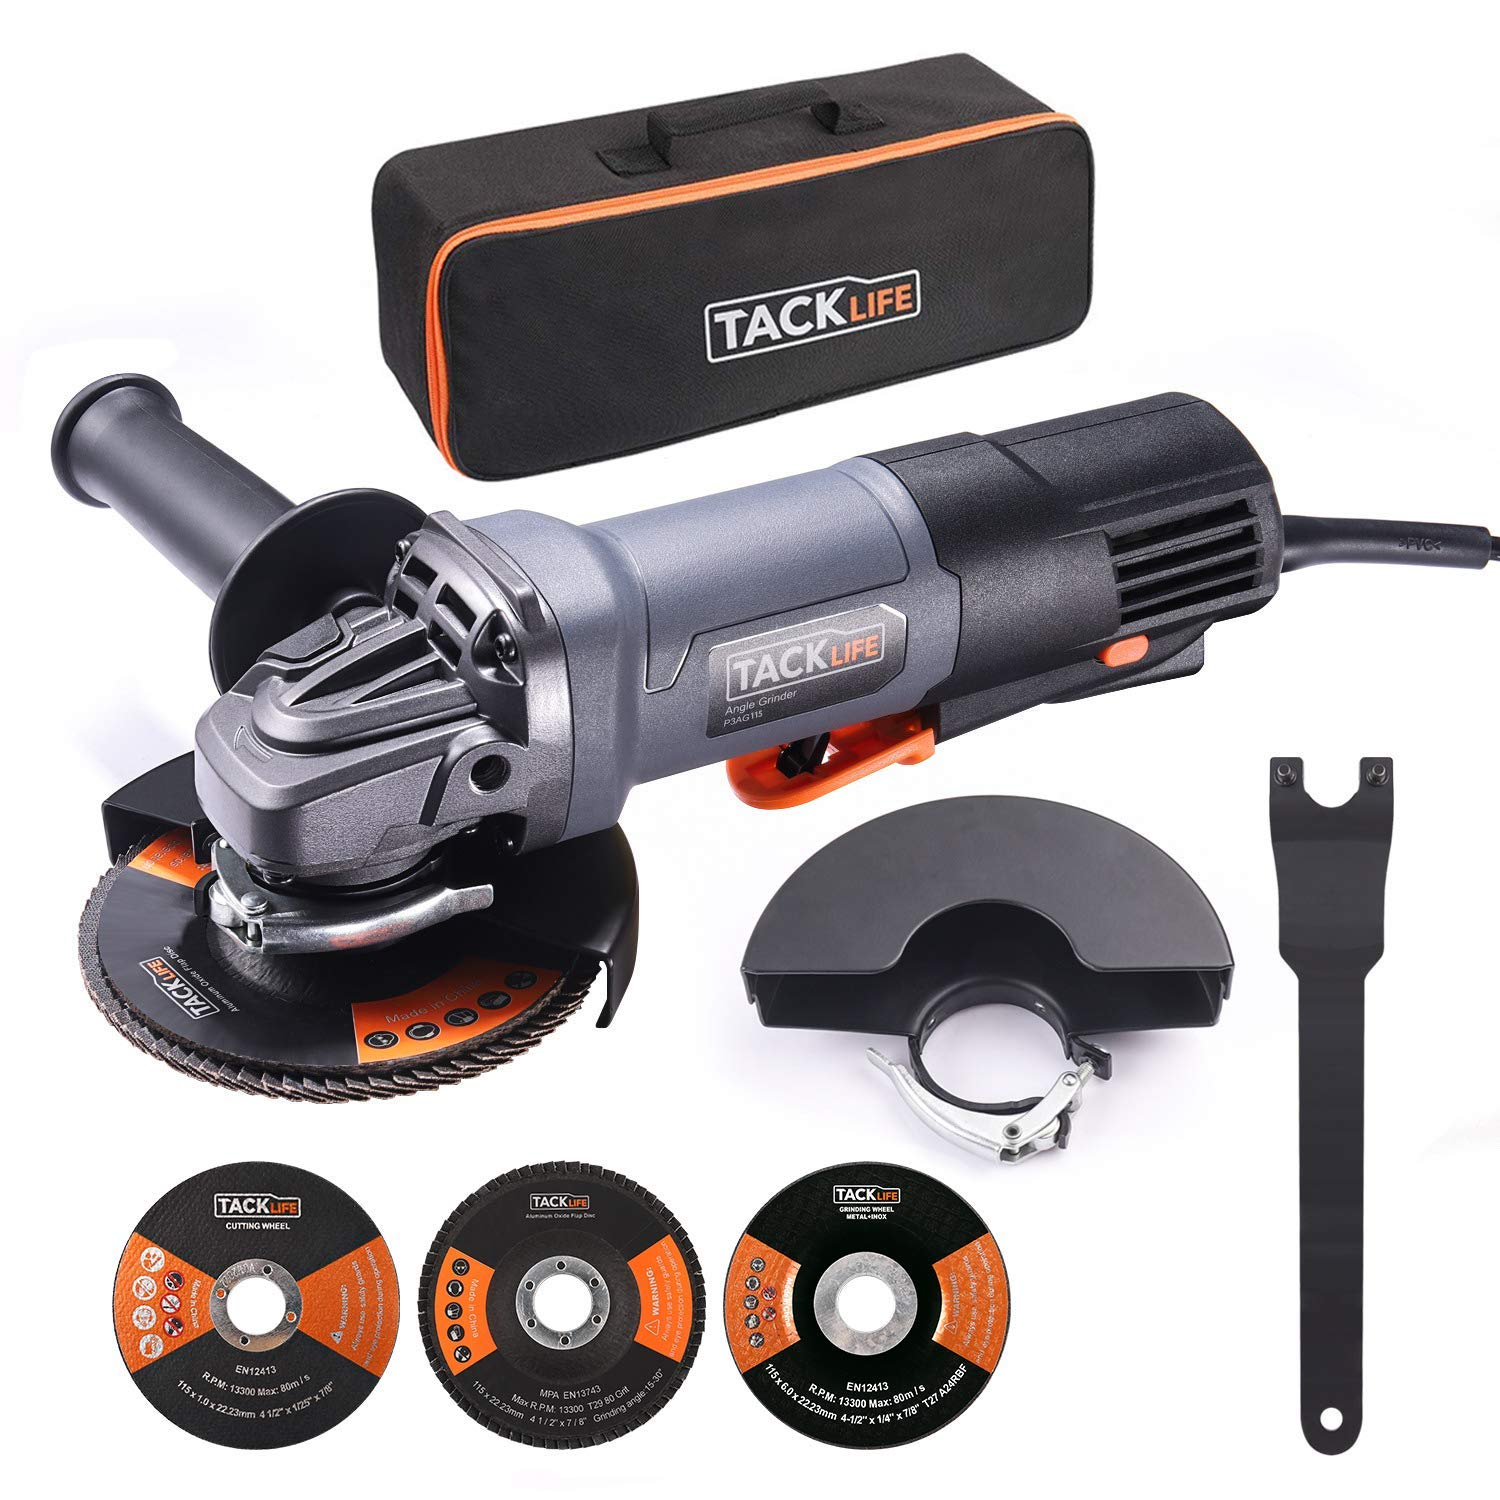 Angle Grinder,4-1 2-Inch,11-Amp 1300W 12000RPM HPP Tool W Paddle Switch 1 Grinding Wheel,1 Cutting Wheel,1 Flap Disc,2 Wheel Guards,1 Carrying Bag,Tacklife P3AG115